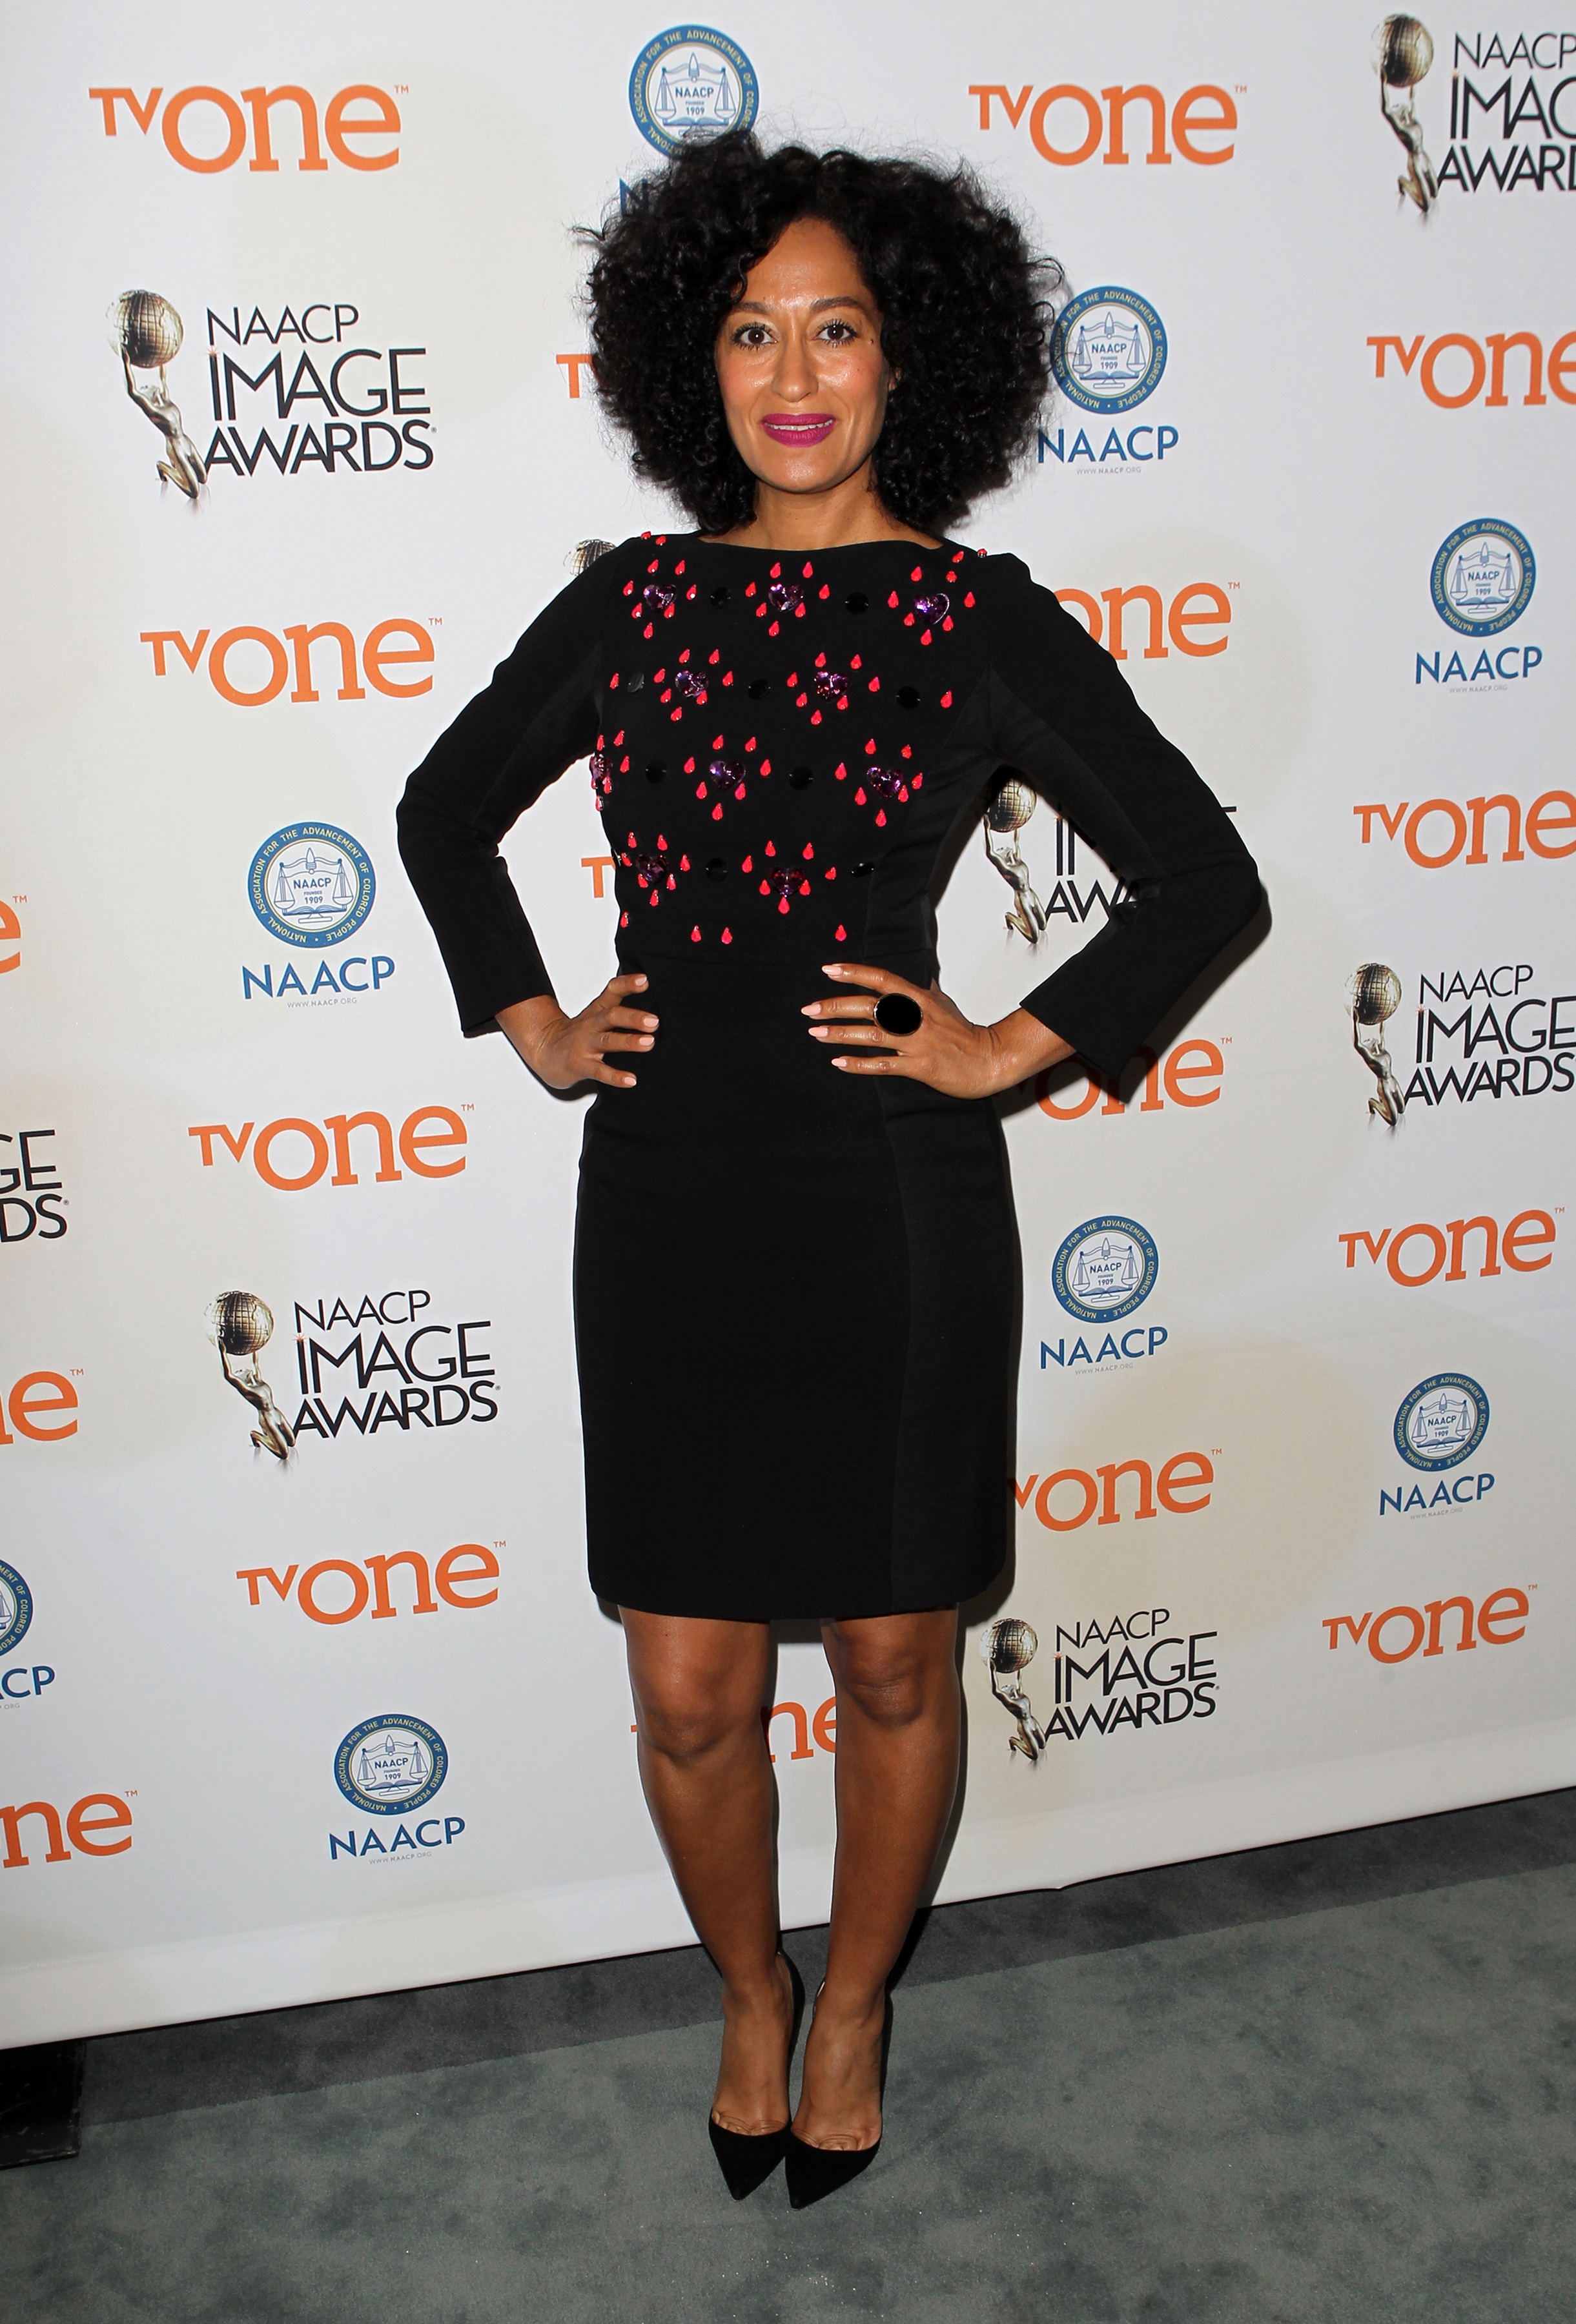 46th NAACP Image Awards - Nomination Announcement and Press Conference